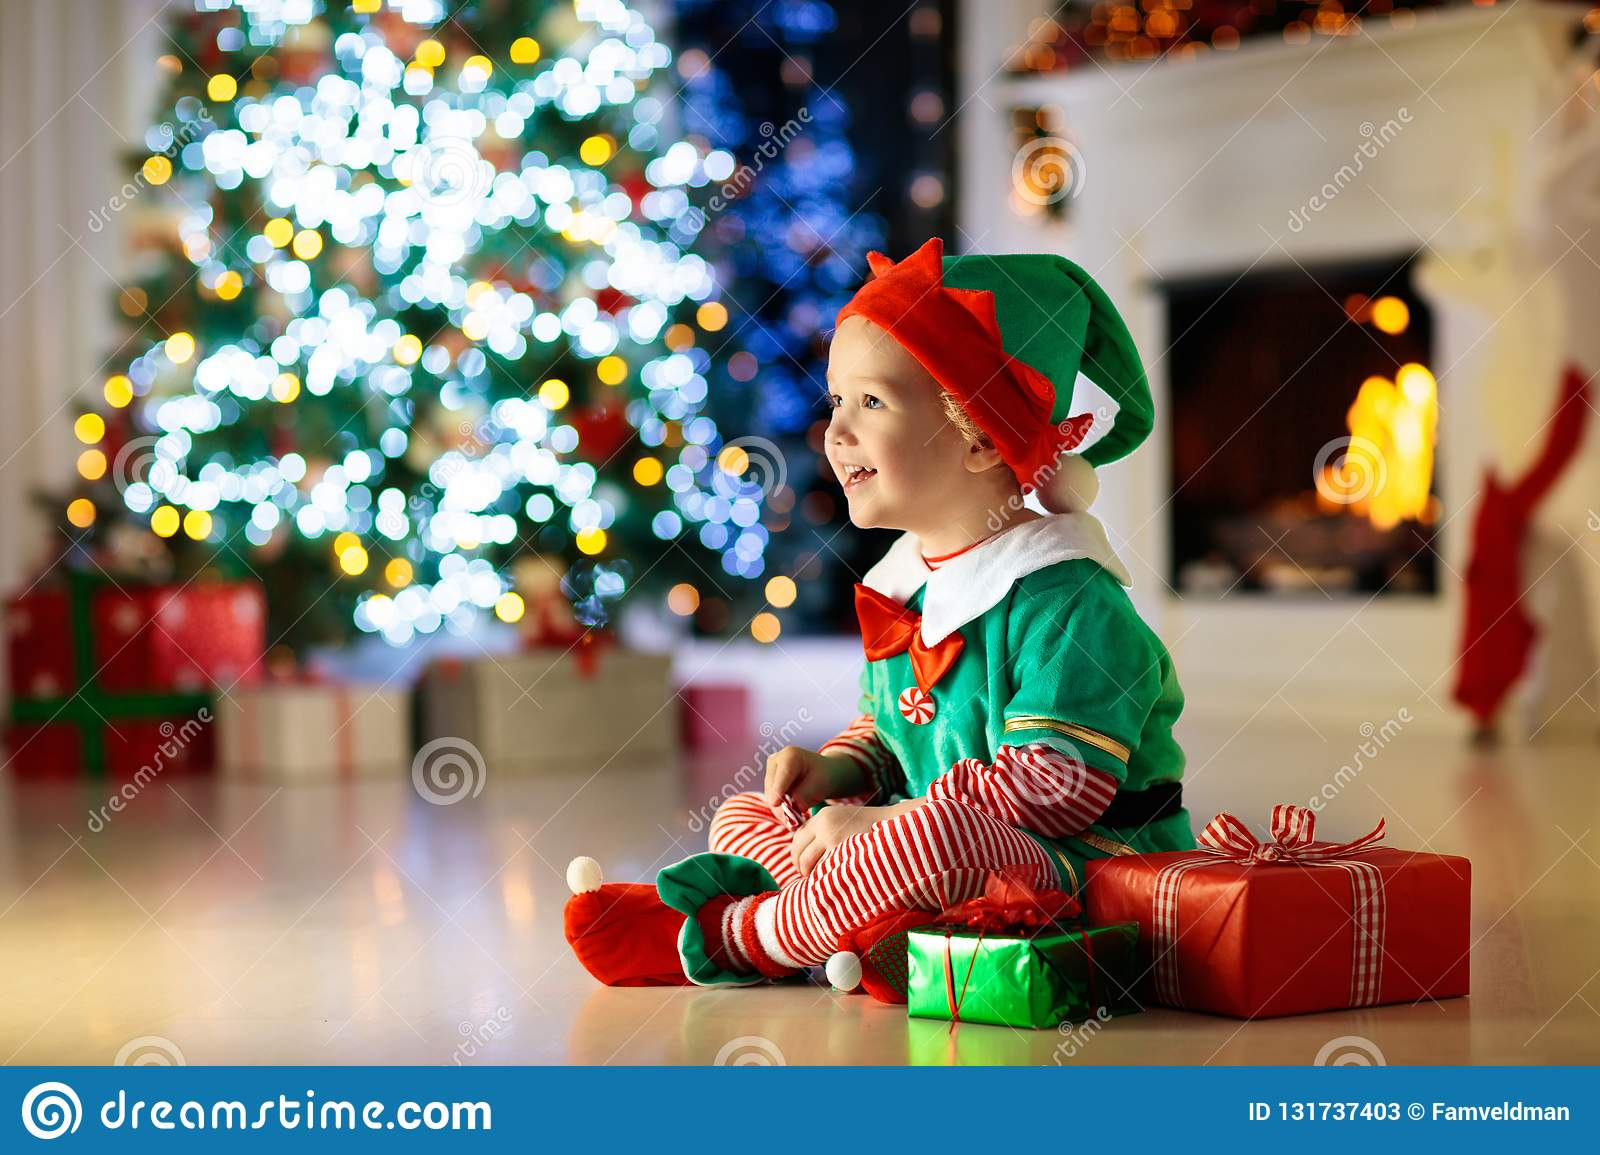 Child opening present at Christmas tree at home. Kid in elf costume with Xmas gifts and toys. Little baby boy with gift box and